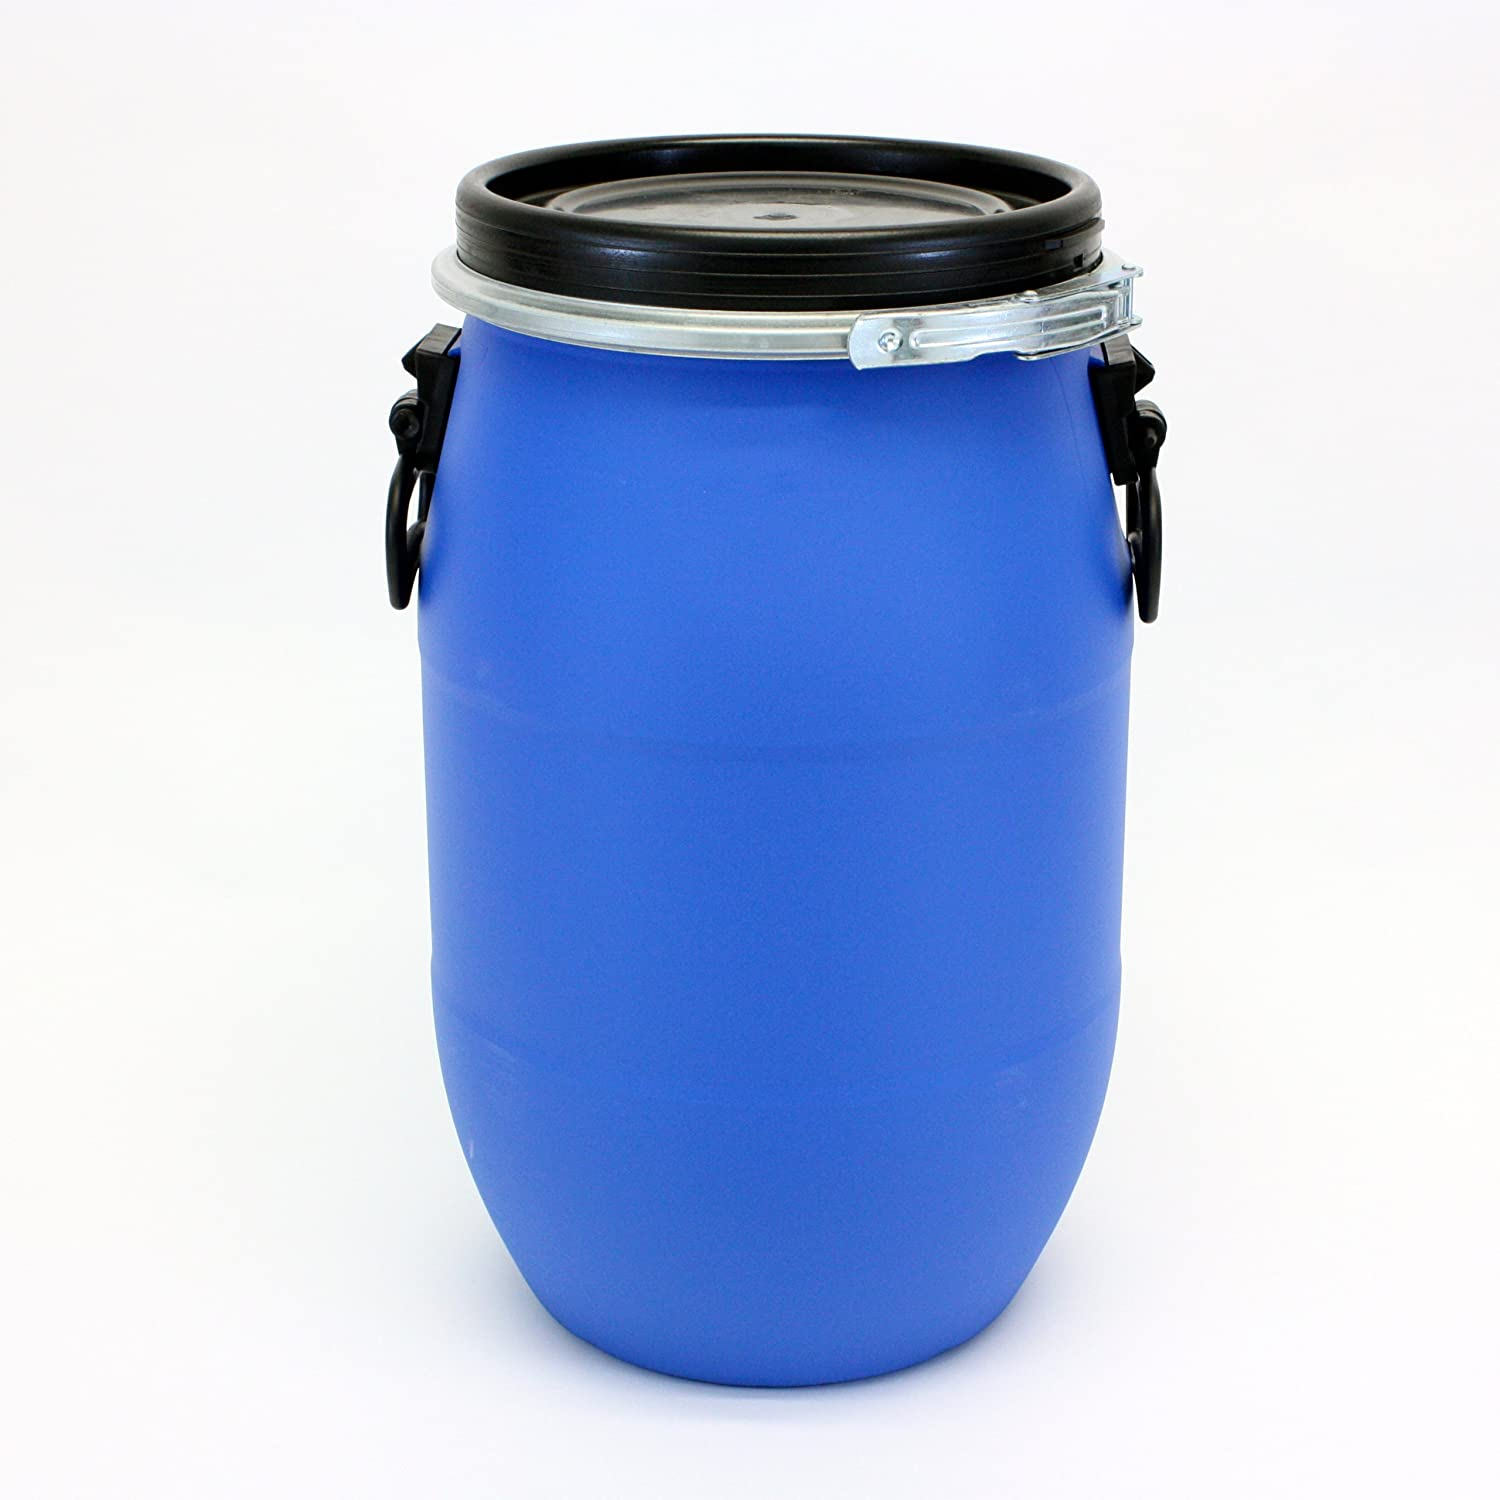 30 Litre airtight storage container 30LBB